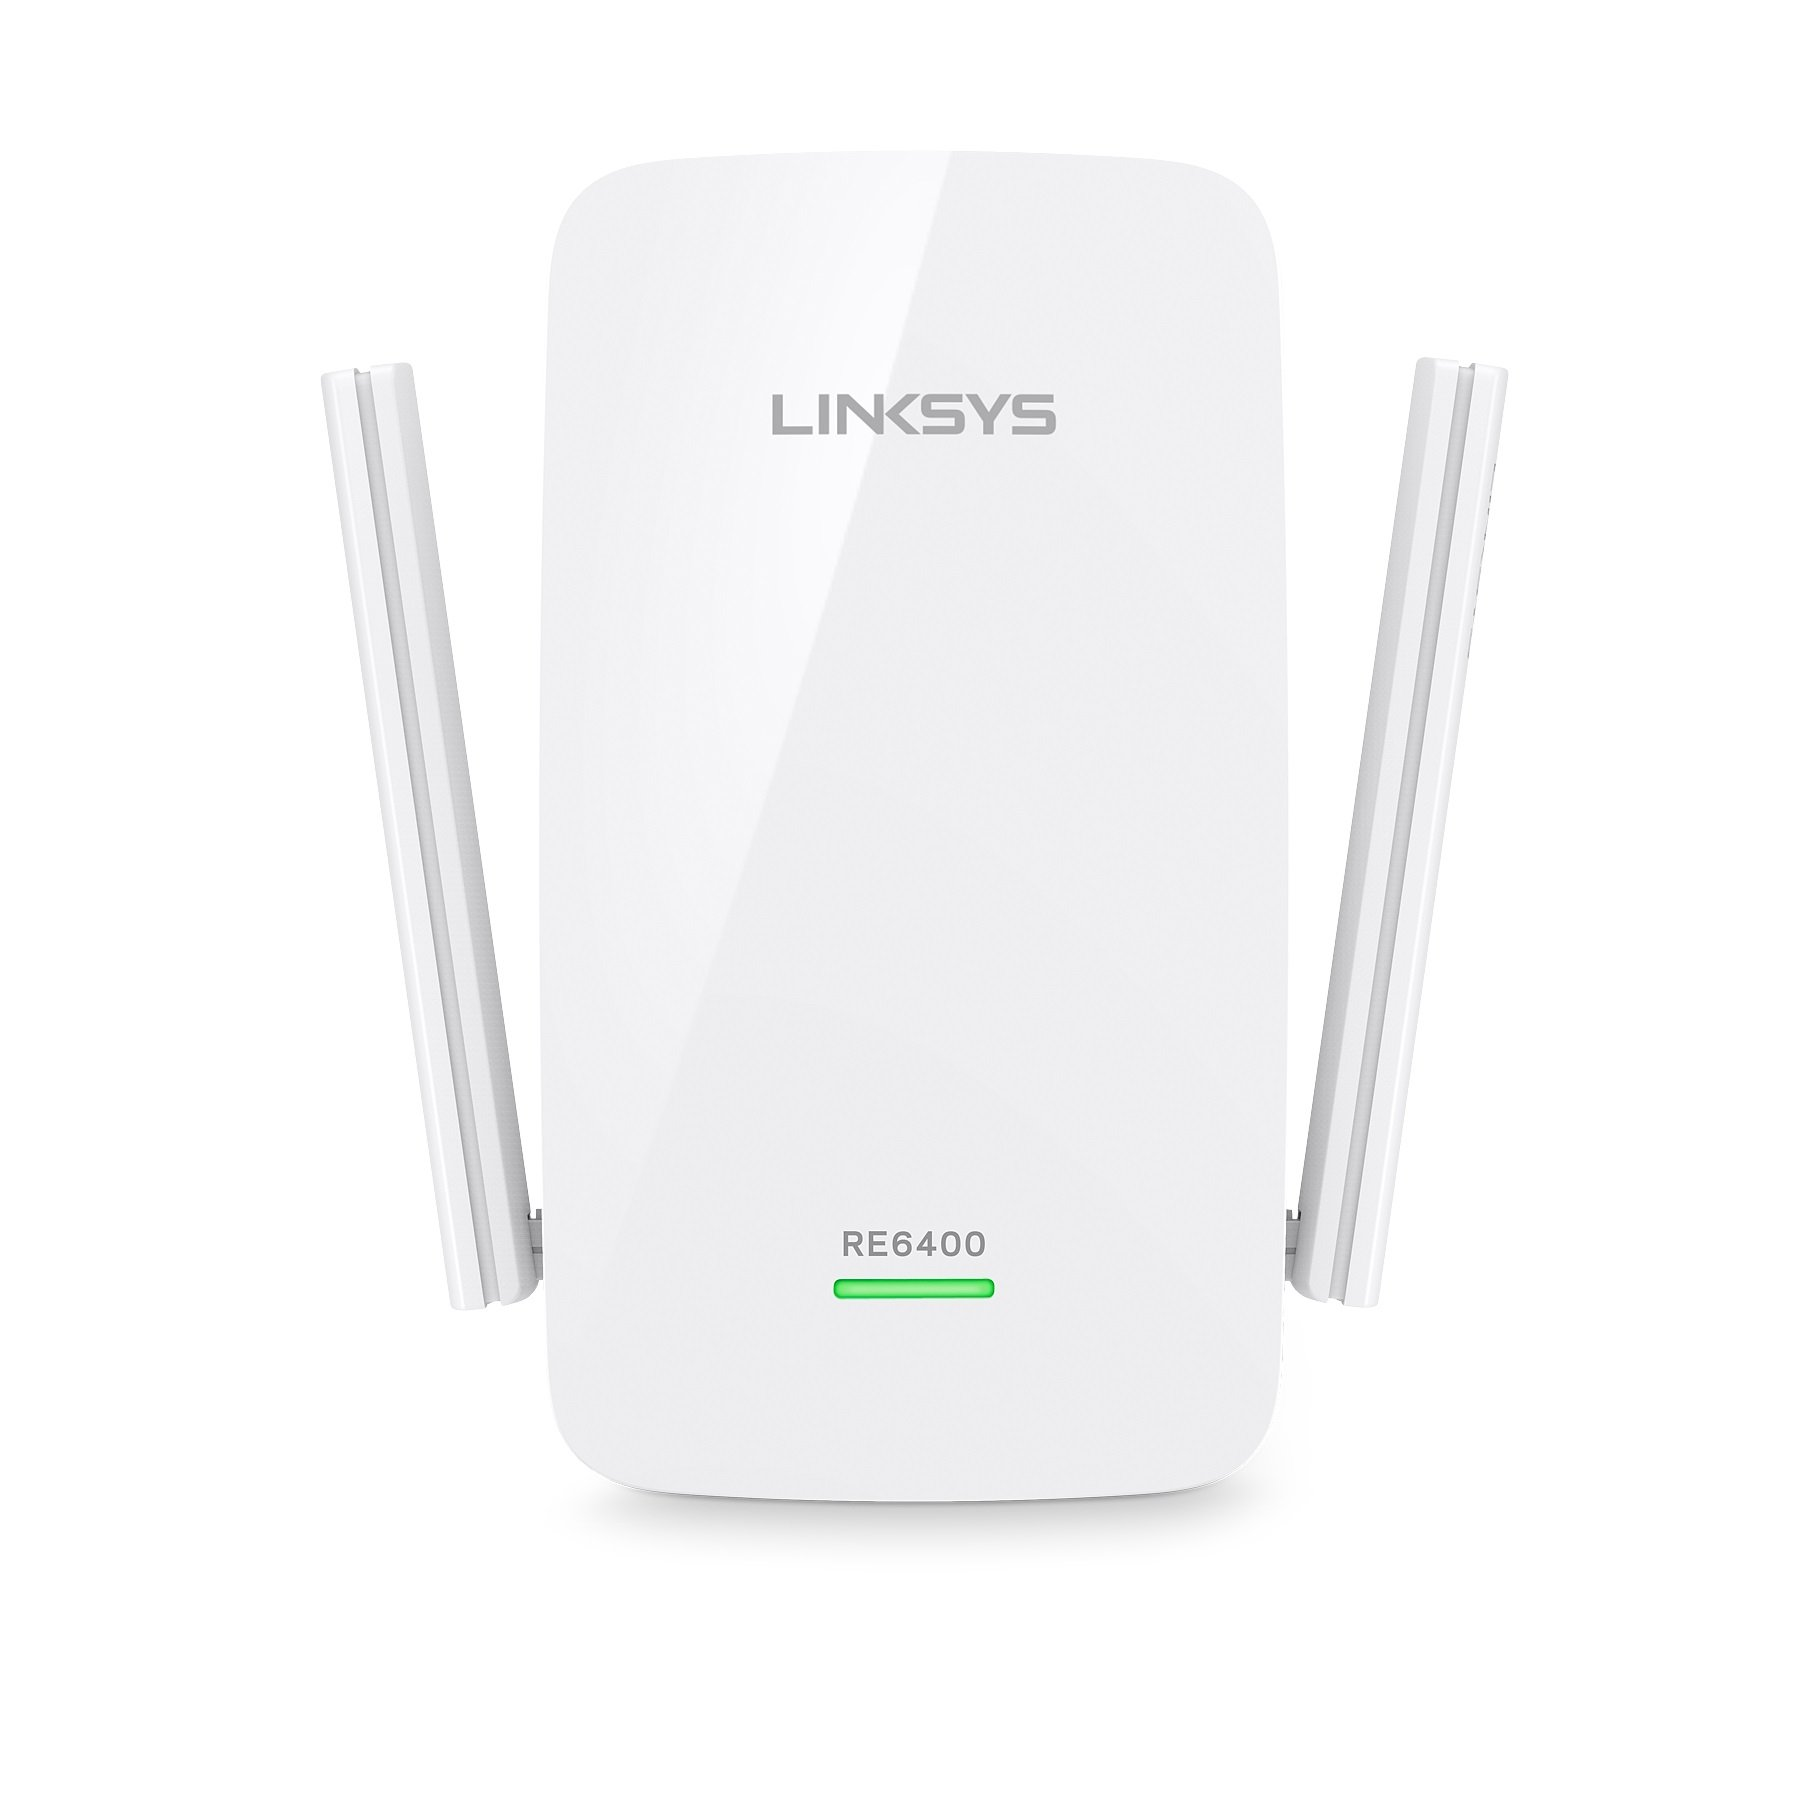 Linksys AC1200 Boost EX Dual-Band Wi-Fi Range Extender (RE6400) by Linksys